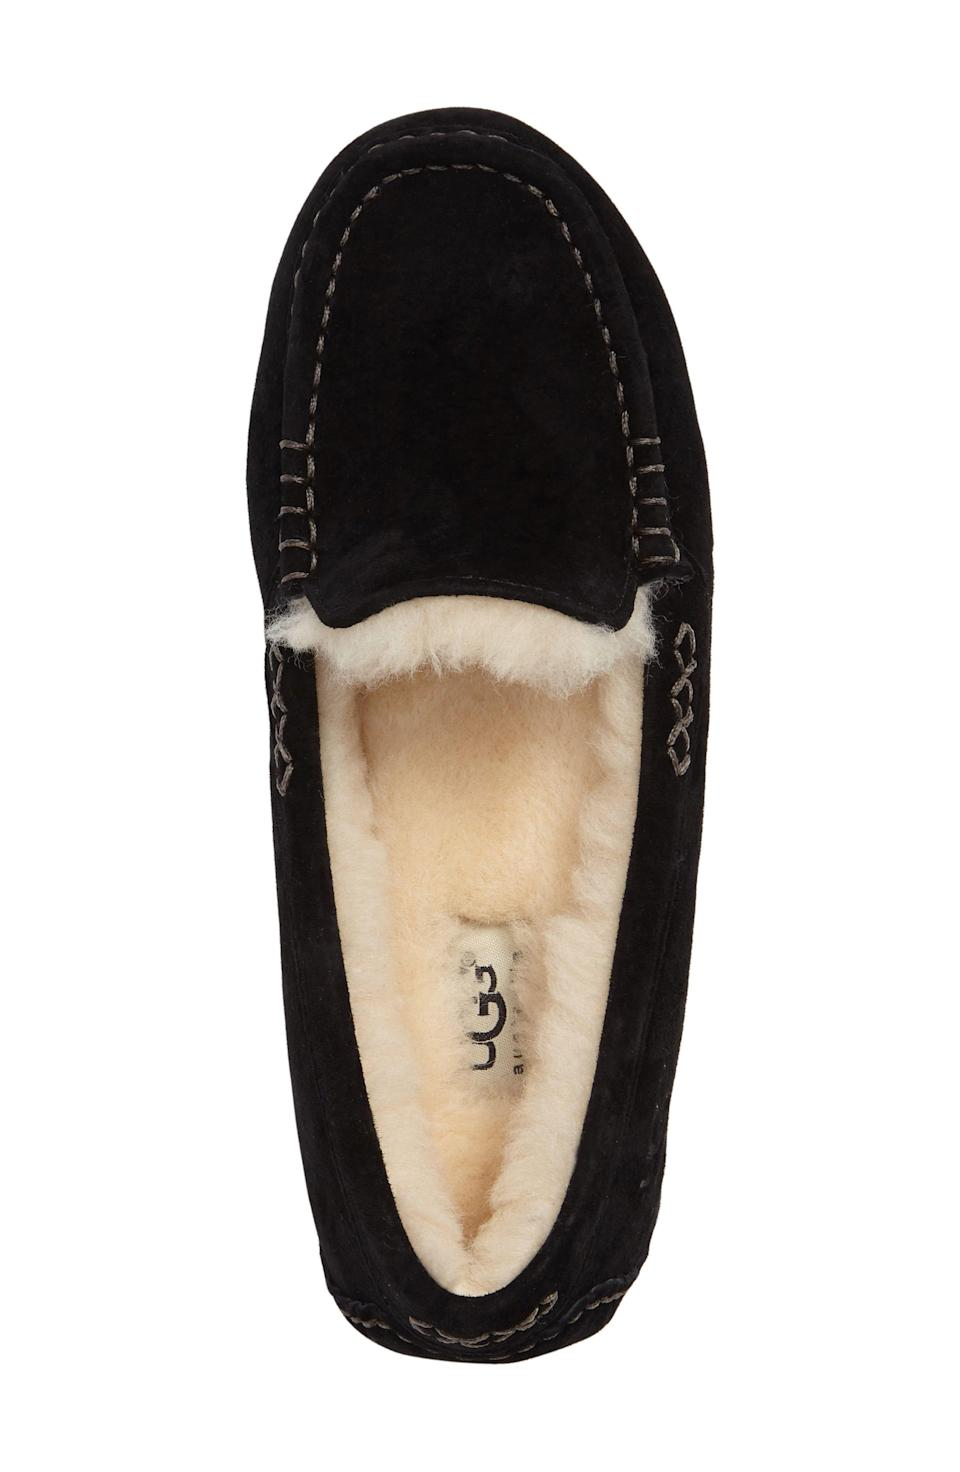 "<p><strong>Ugg</strong></p><p>nordstrom.com</p><p><strong>$74.96</strong></p><p><a href=""https://go.redirectingat.com?id=74968X1596630&url=https%3A%2F%2Fwww.nordstrom.com%2Fs%2Fugg-ansley-water-resistant-slipper-women%2F3164992&sref=https%3A%2F%2Fwww.redbookmag.com%2Flife%2Fg34775576%2Fbest-gifts-for-friends-ideas%2F"" rel=""nofollow noopener"" target=""_blank"" data-ylk=""slk:Shop Now"" class=""link rapid-noclick-resp"">Shop Now</a></p><p>Because it's truly cozy season.</p>"